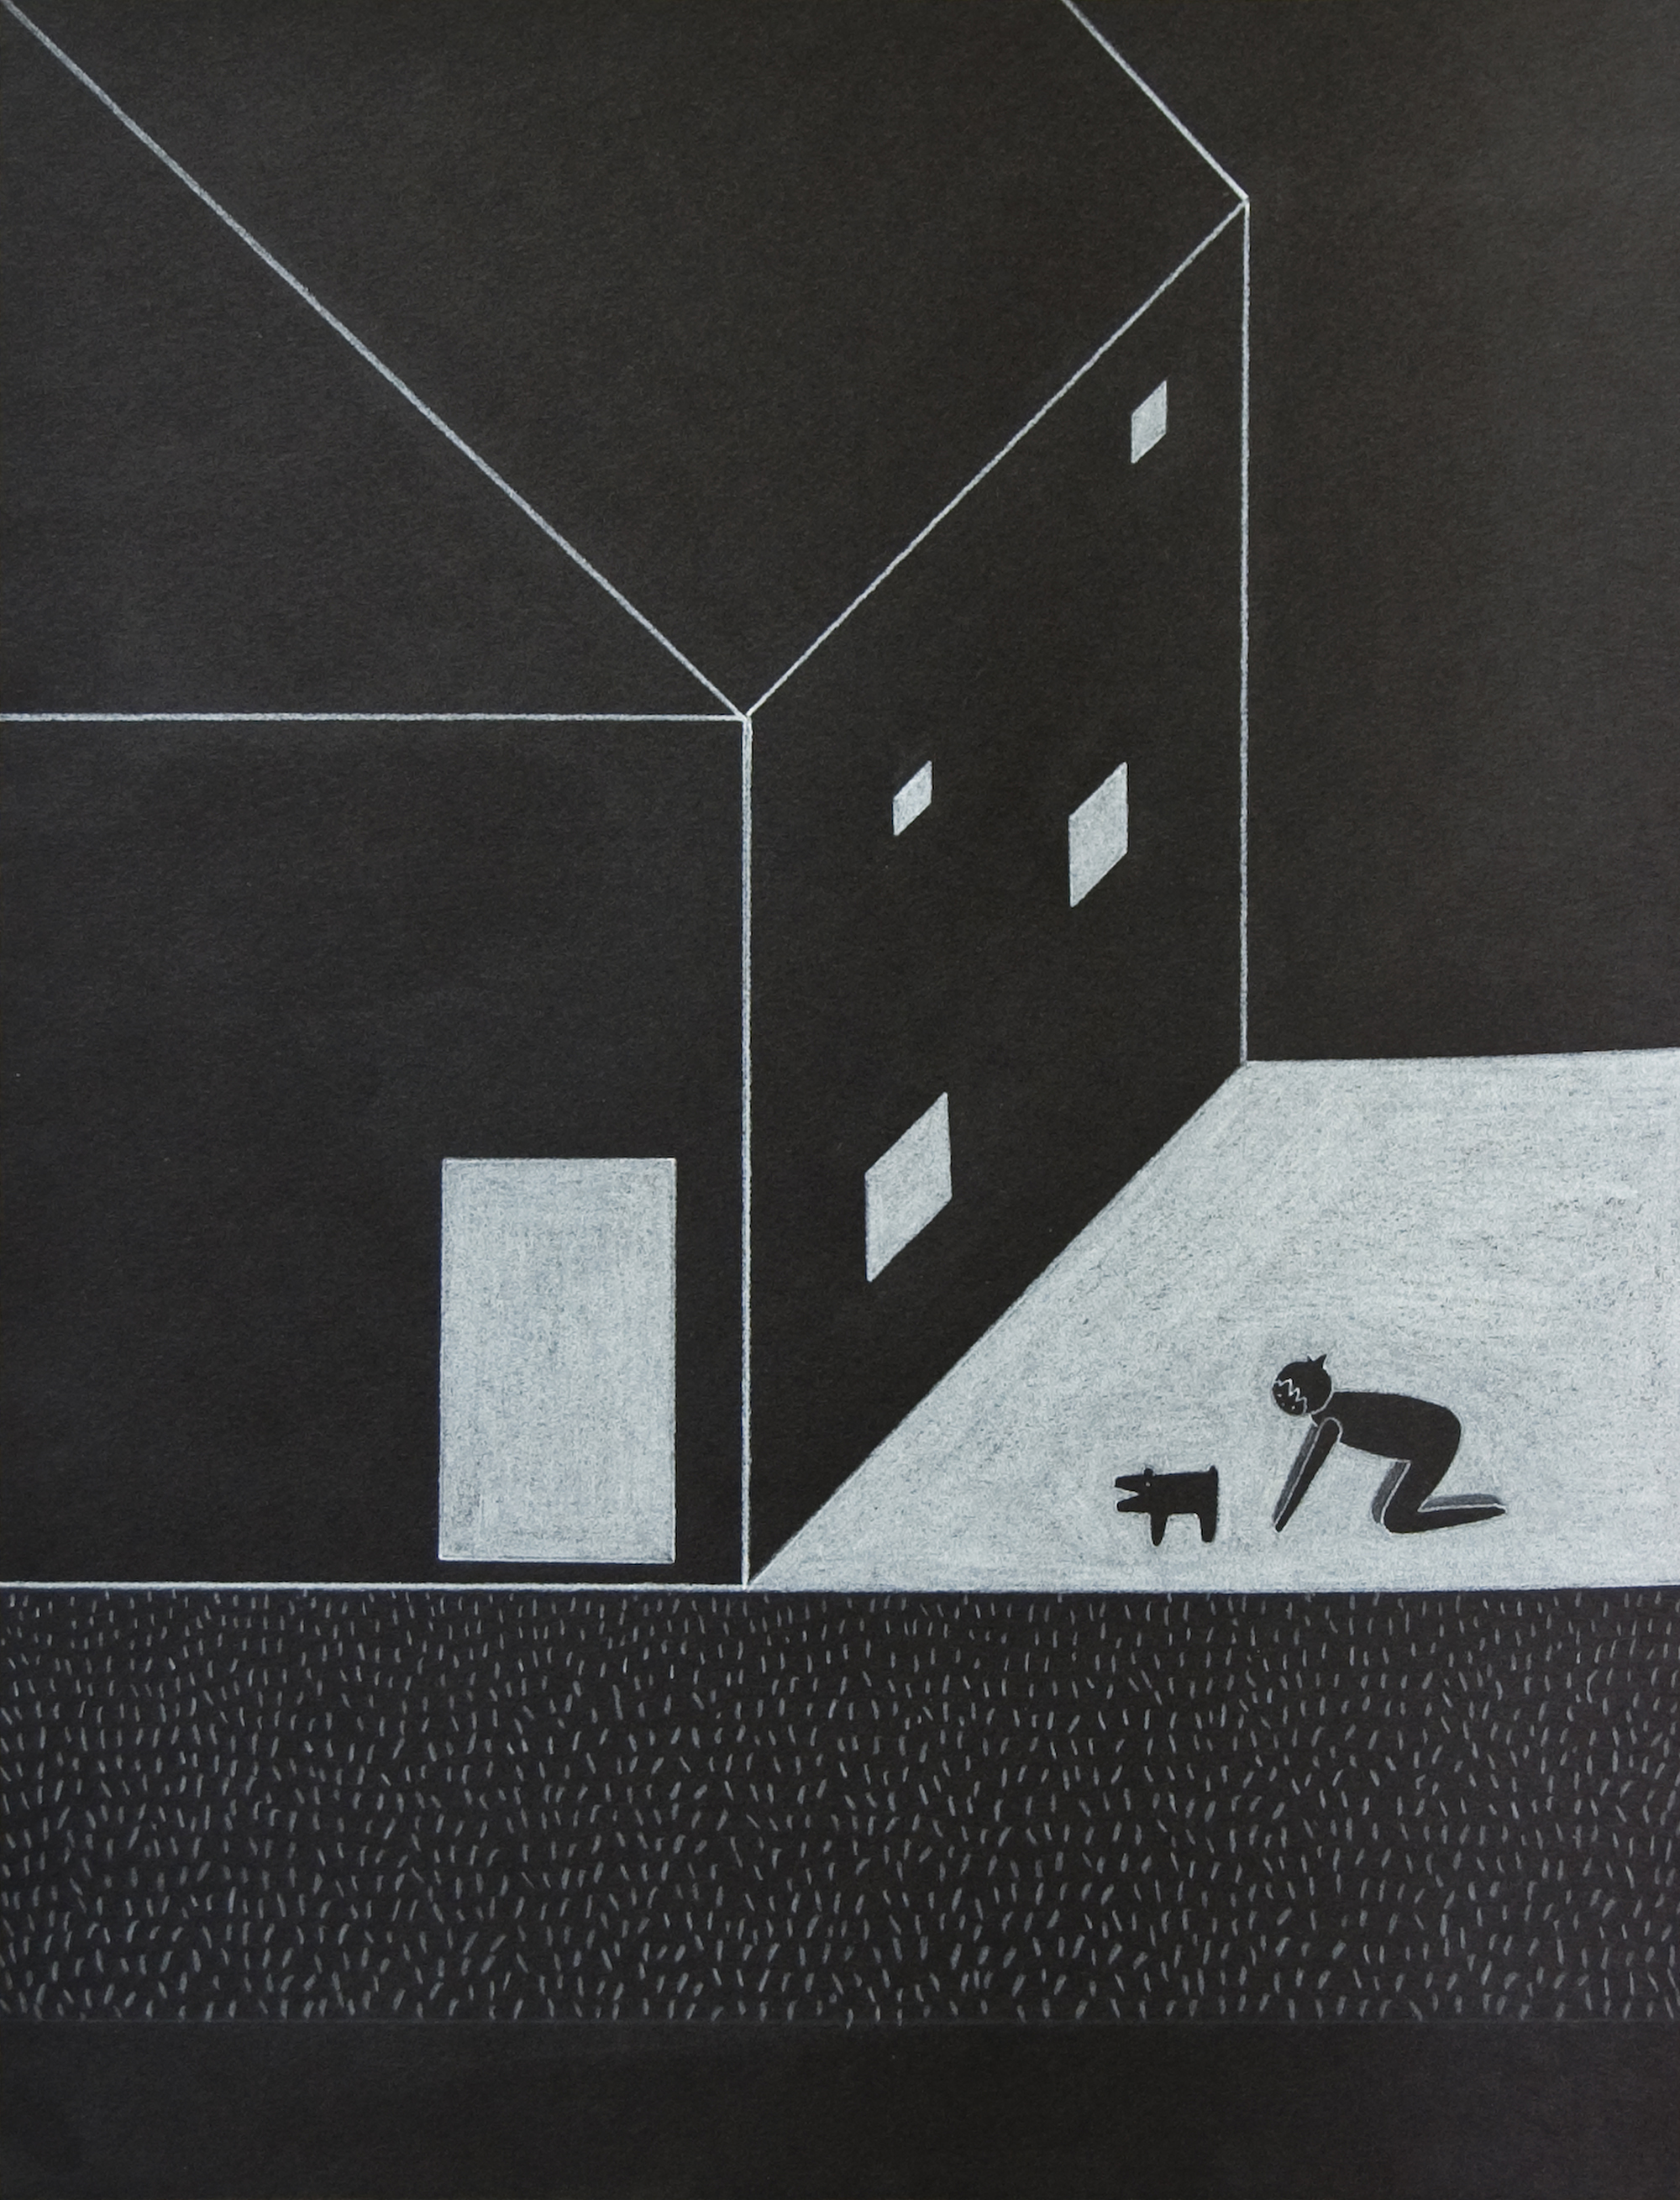 Untitled (The House)